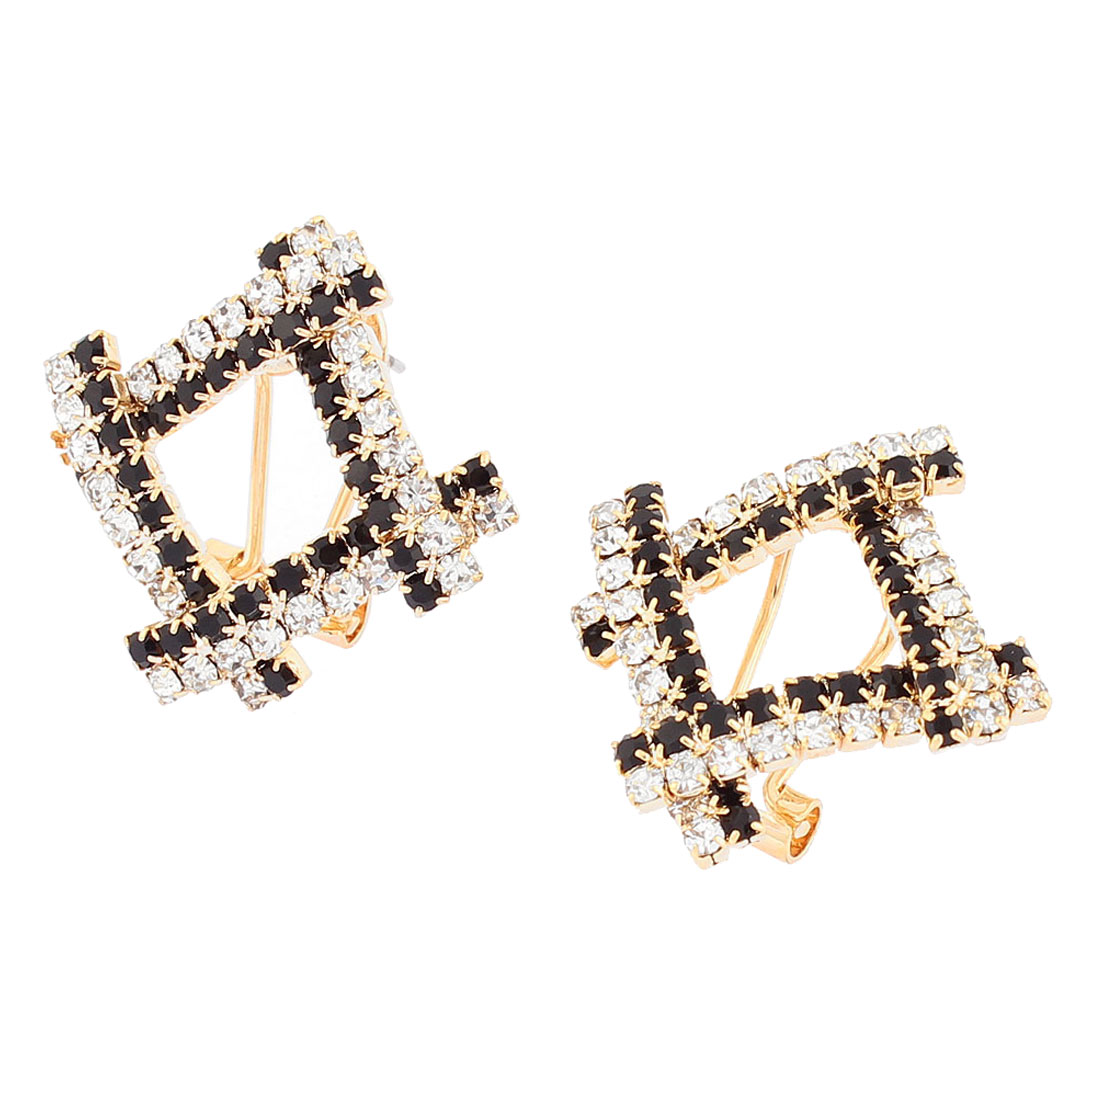 Woman Fashion Inlaid Faux Rhinestone Square Pandent Stud Earrings Ear Pins Nails Gold Tone Pair